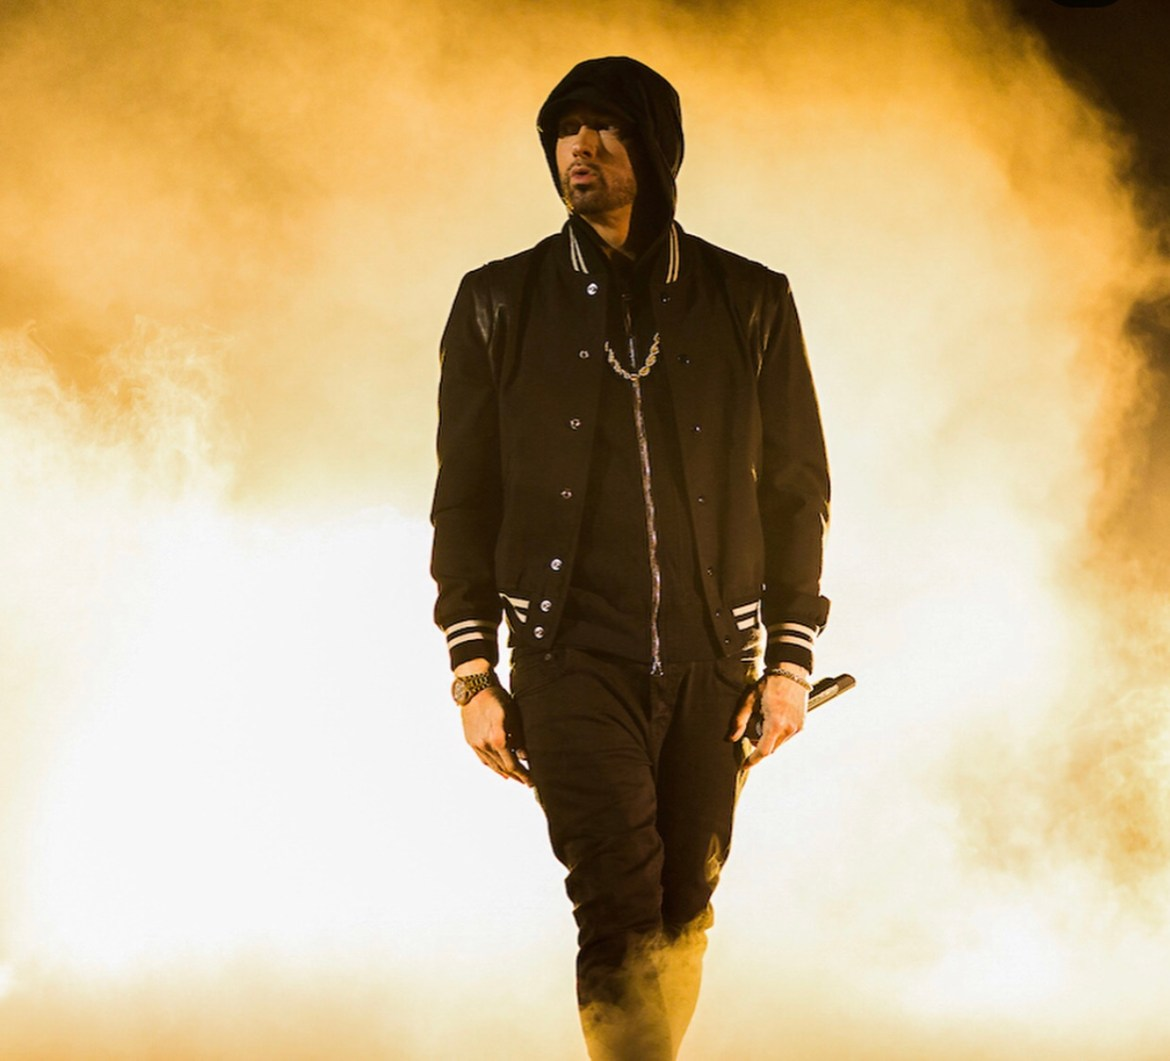 Eminem is tearing up the rap game track after track, collab after collab. 💯